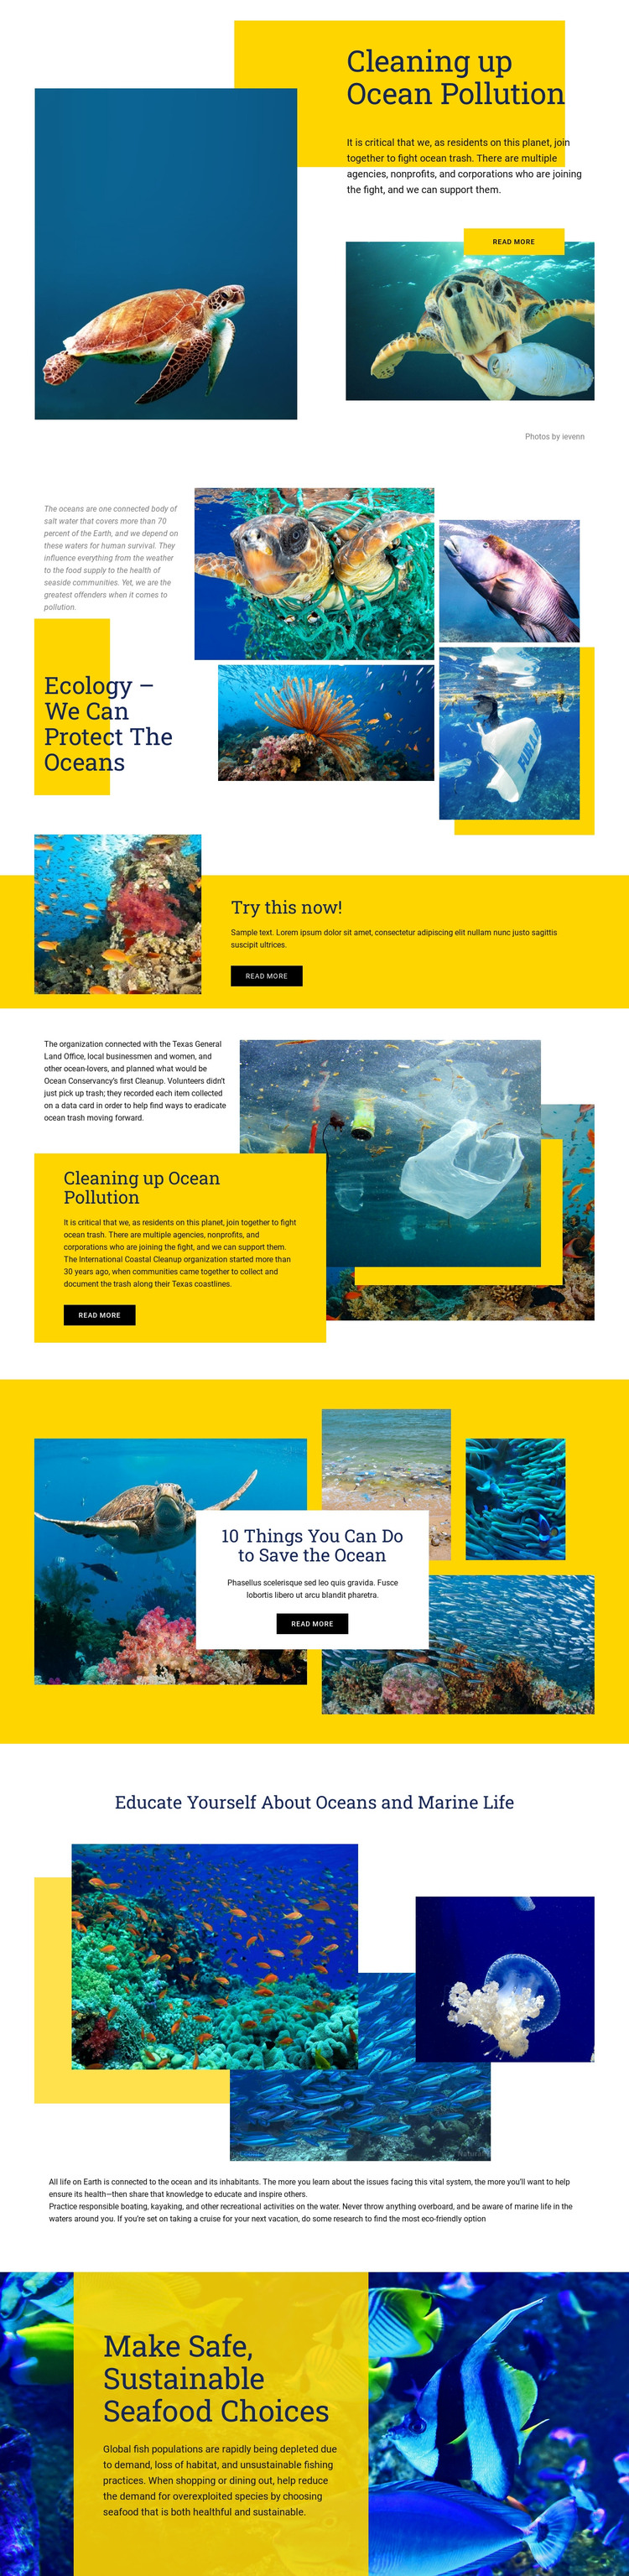 Protect The Oceans HTML Template